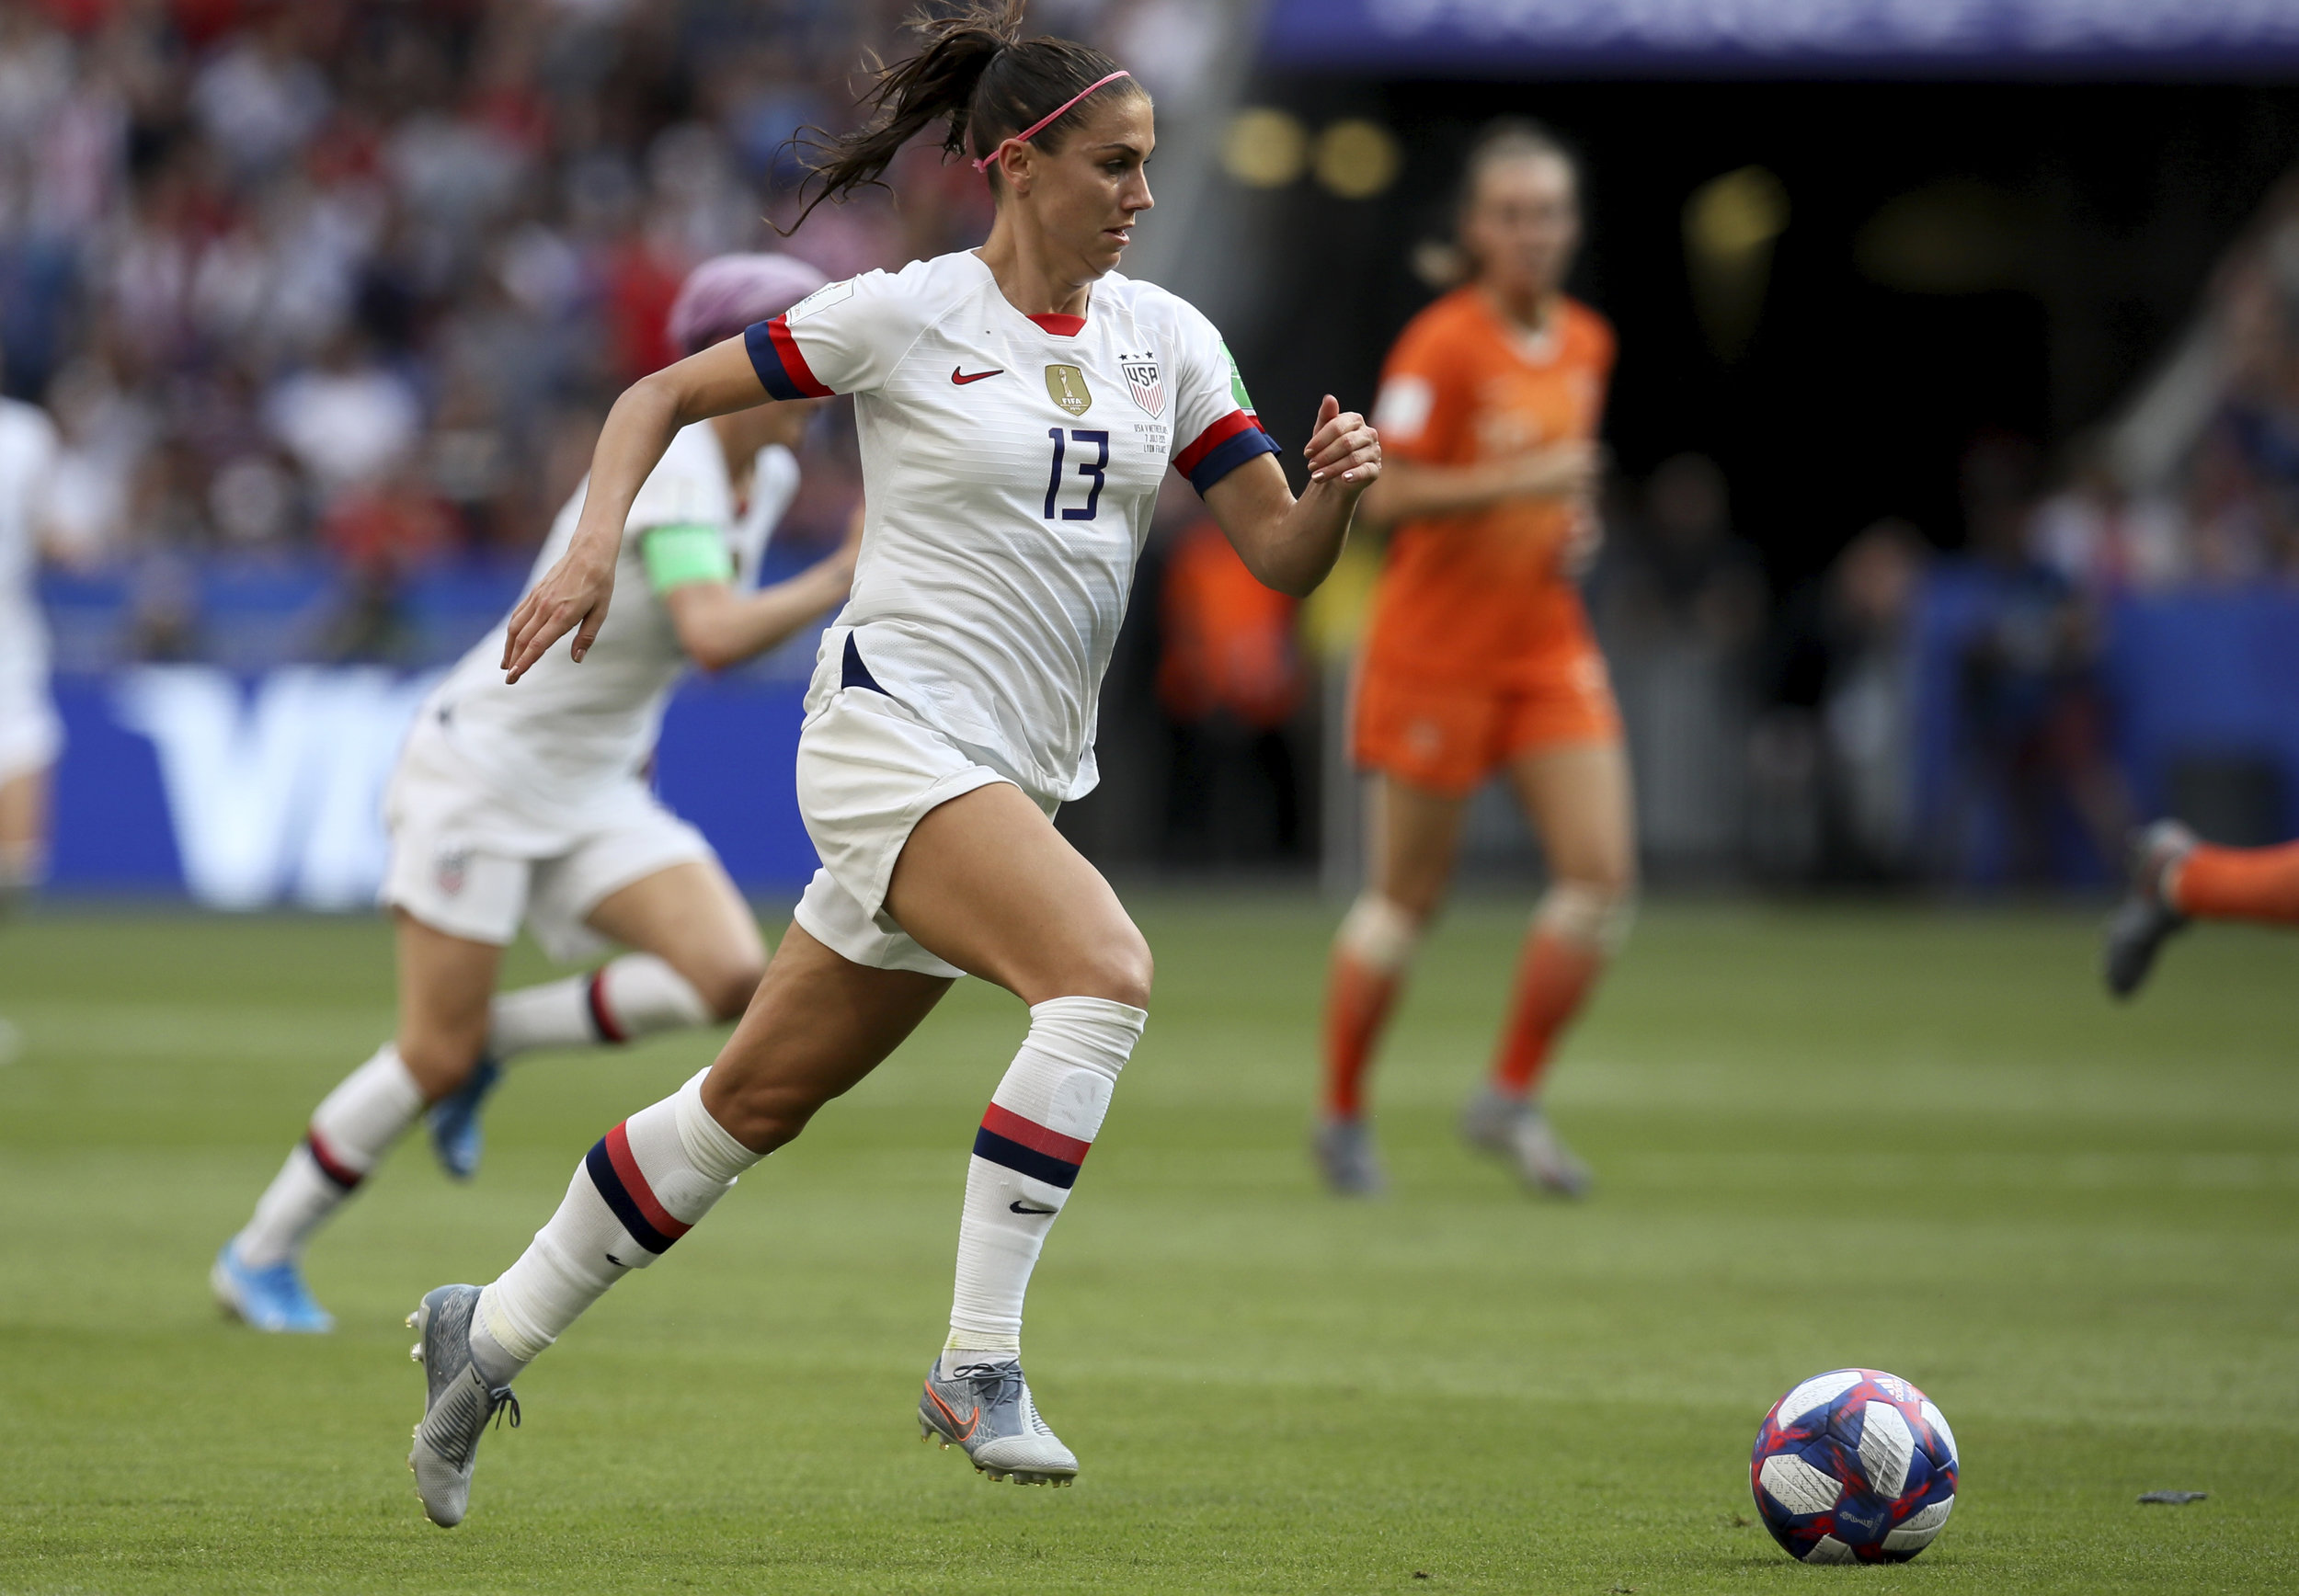 Stadium Talk covered the Women's World Cup using photos, like this one of Team USA's Alex Morgan, from AP Images. (AP Photo/David Vincent)